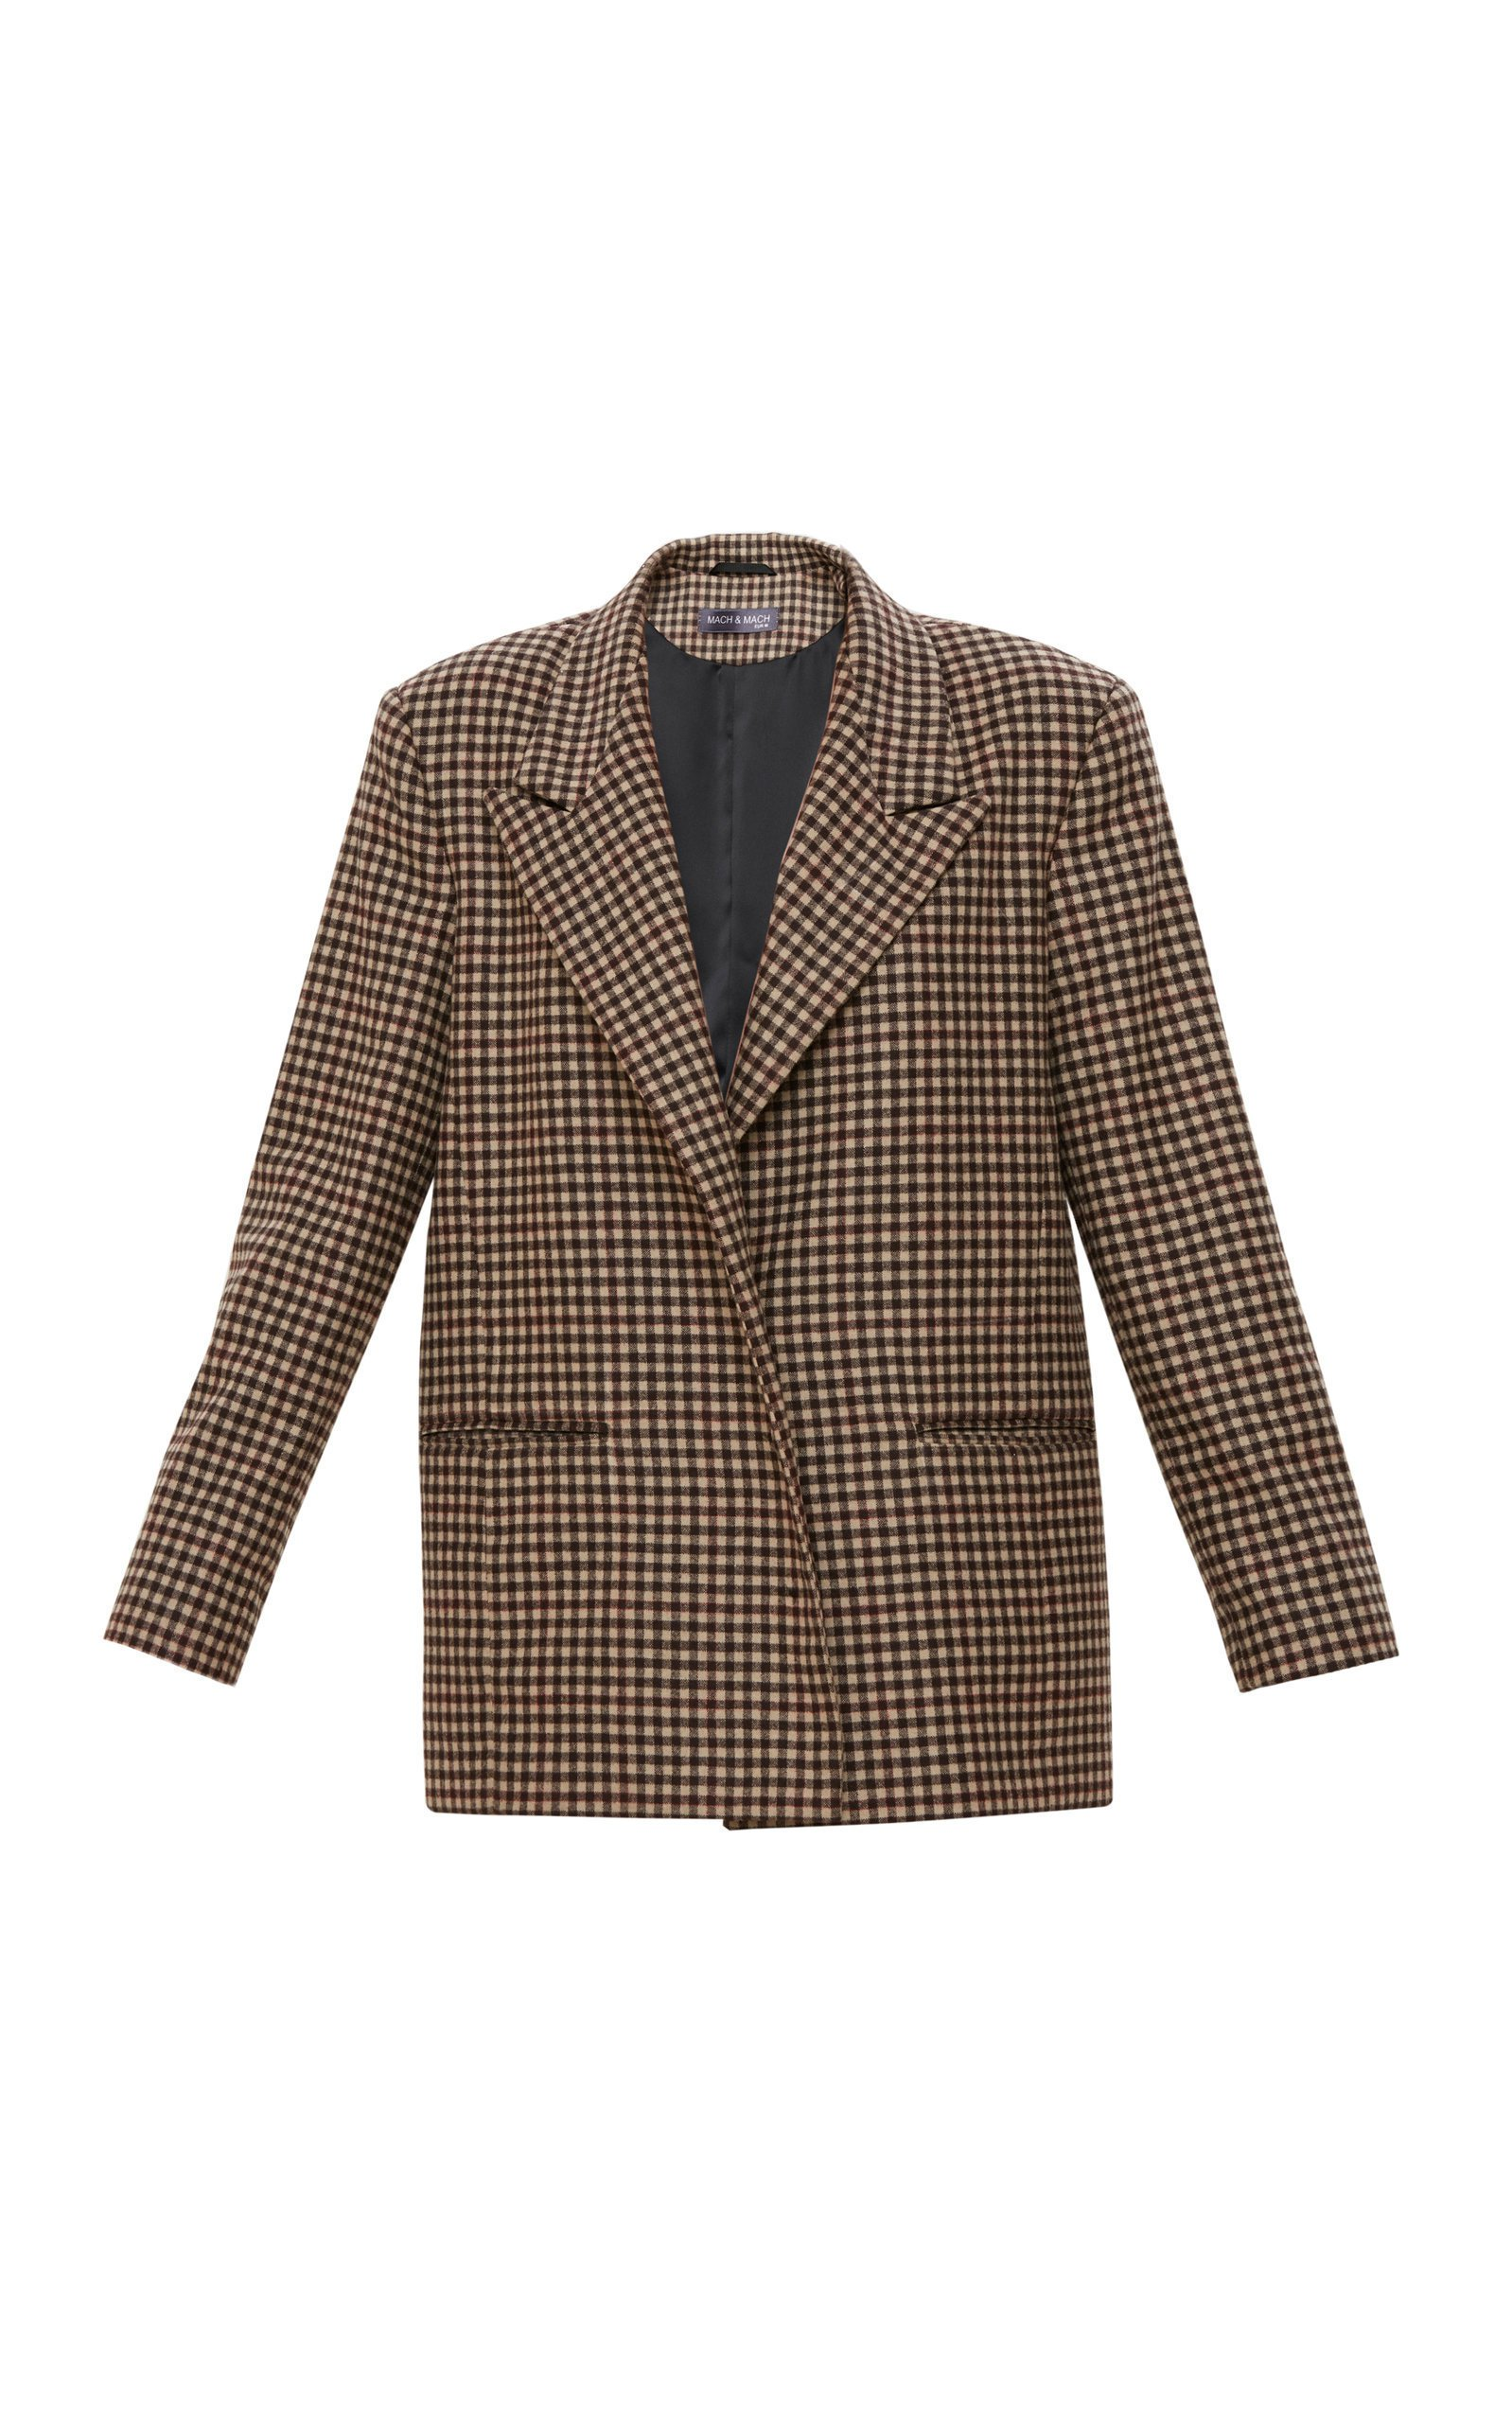 Mach & Mach Brown Colored Check Blazer